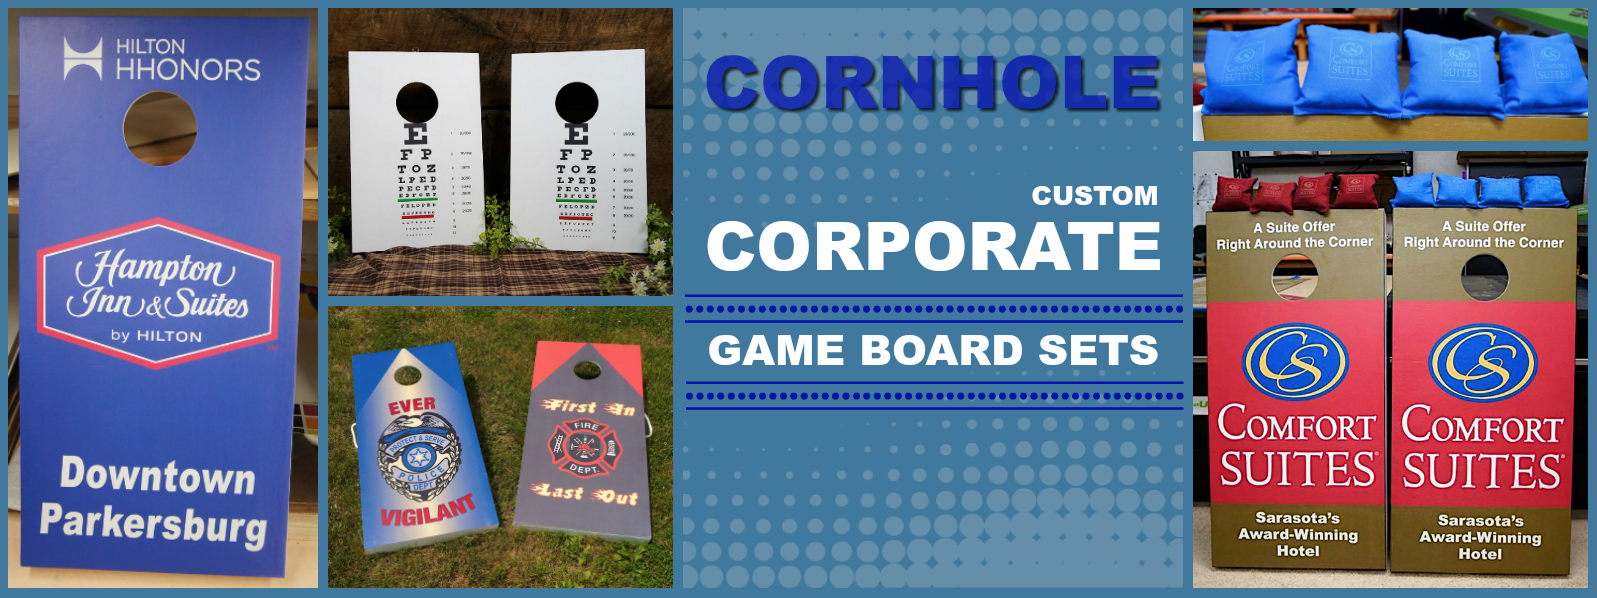 Our custom Corporate Cornhole Game Board Sets are ideal for your next company event or employee picnic. l ExpressionsNmore.com